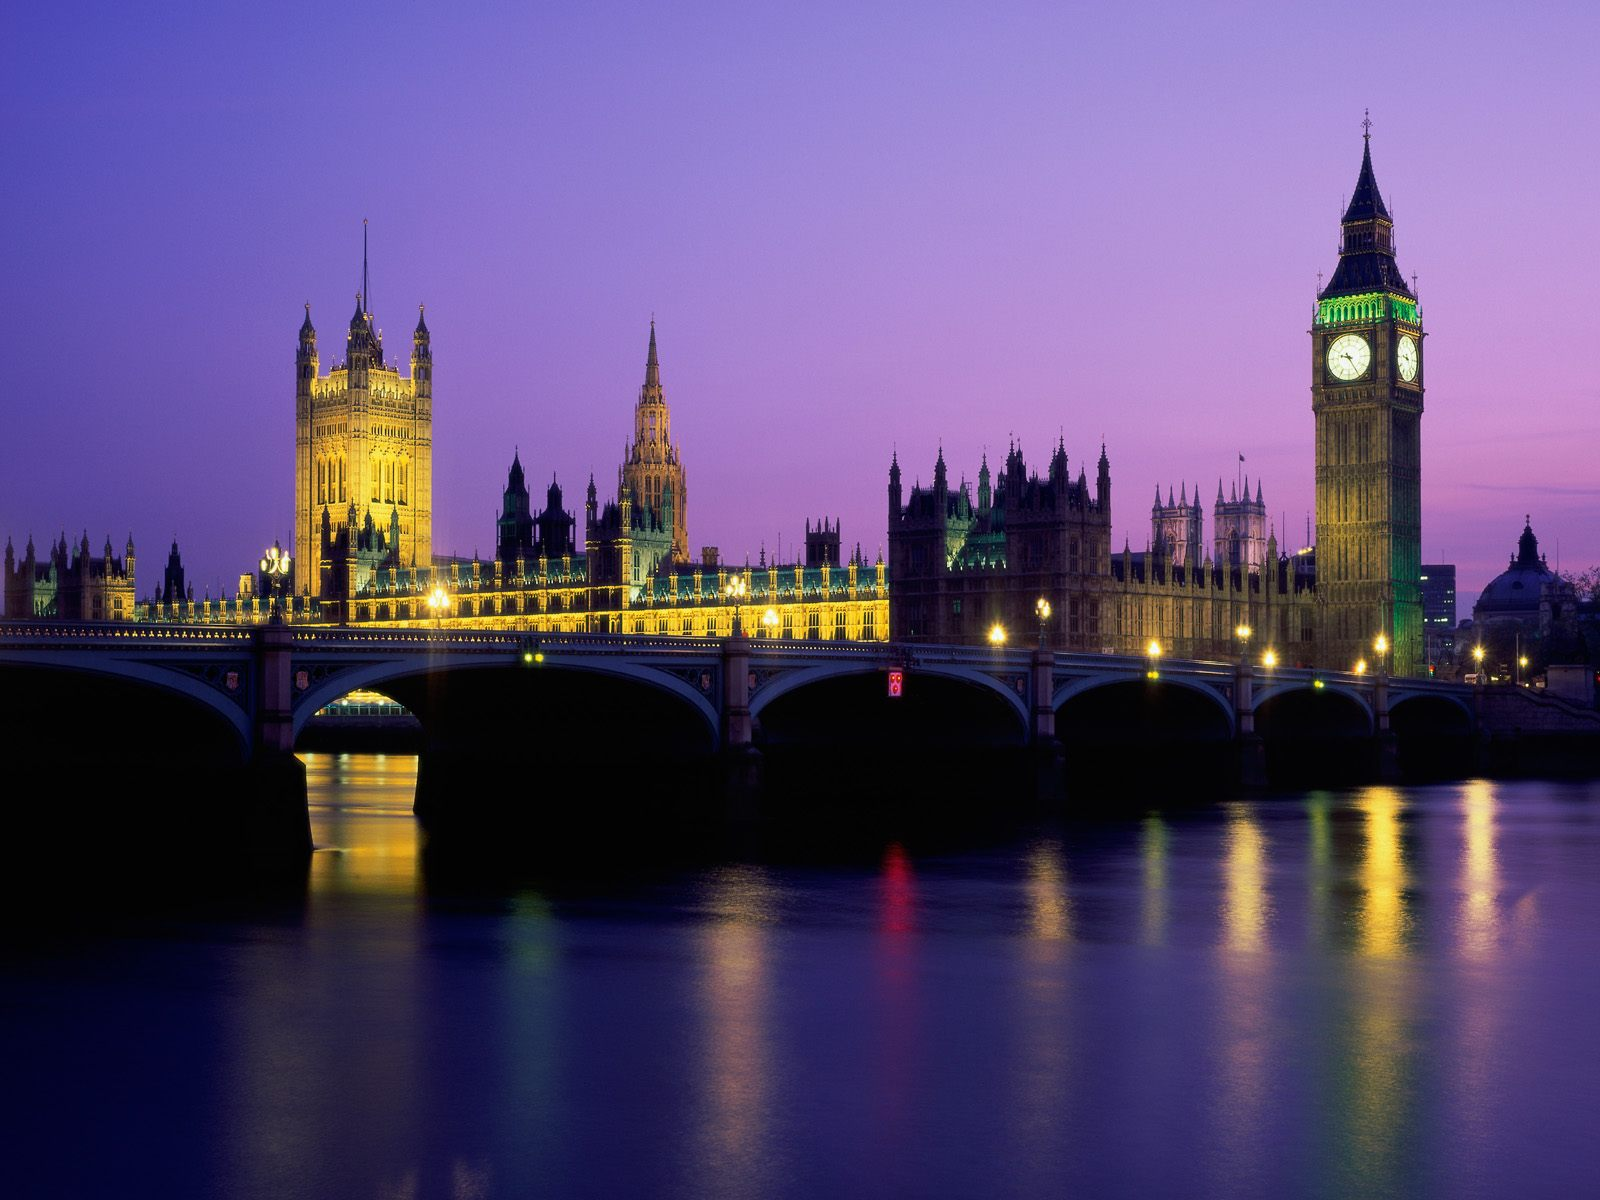 http://4.bp.blogspot.com/-KUq6ZY-J7HE/T6Kdd0y955I/AAAAAAAAA38/MjeDHoHmttY/s1600/z4-Big_Ben_Houses_of_Parliament_London_England_sfondo-desktop-hd-wallpaper-sfondodesktop.altervista.org_.jpg